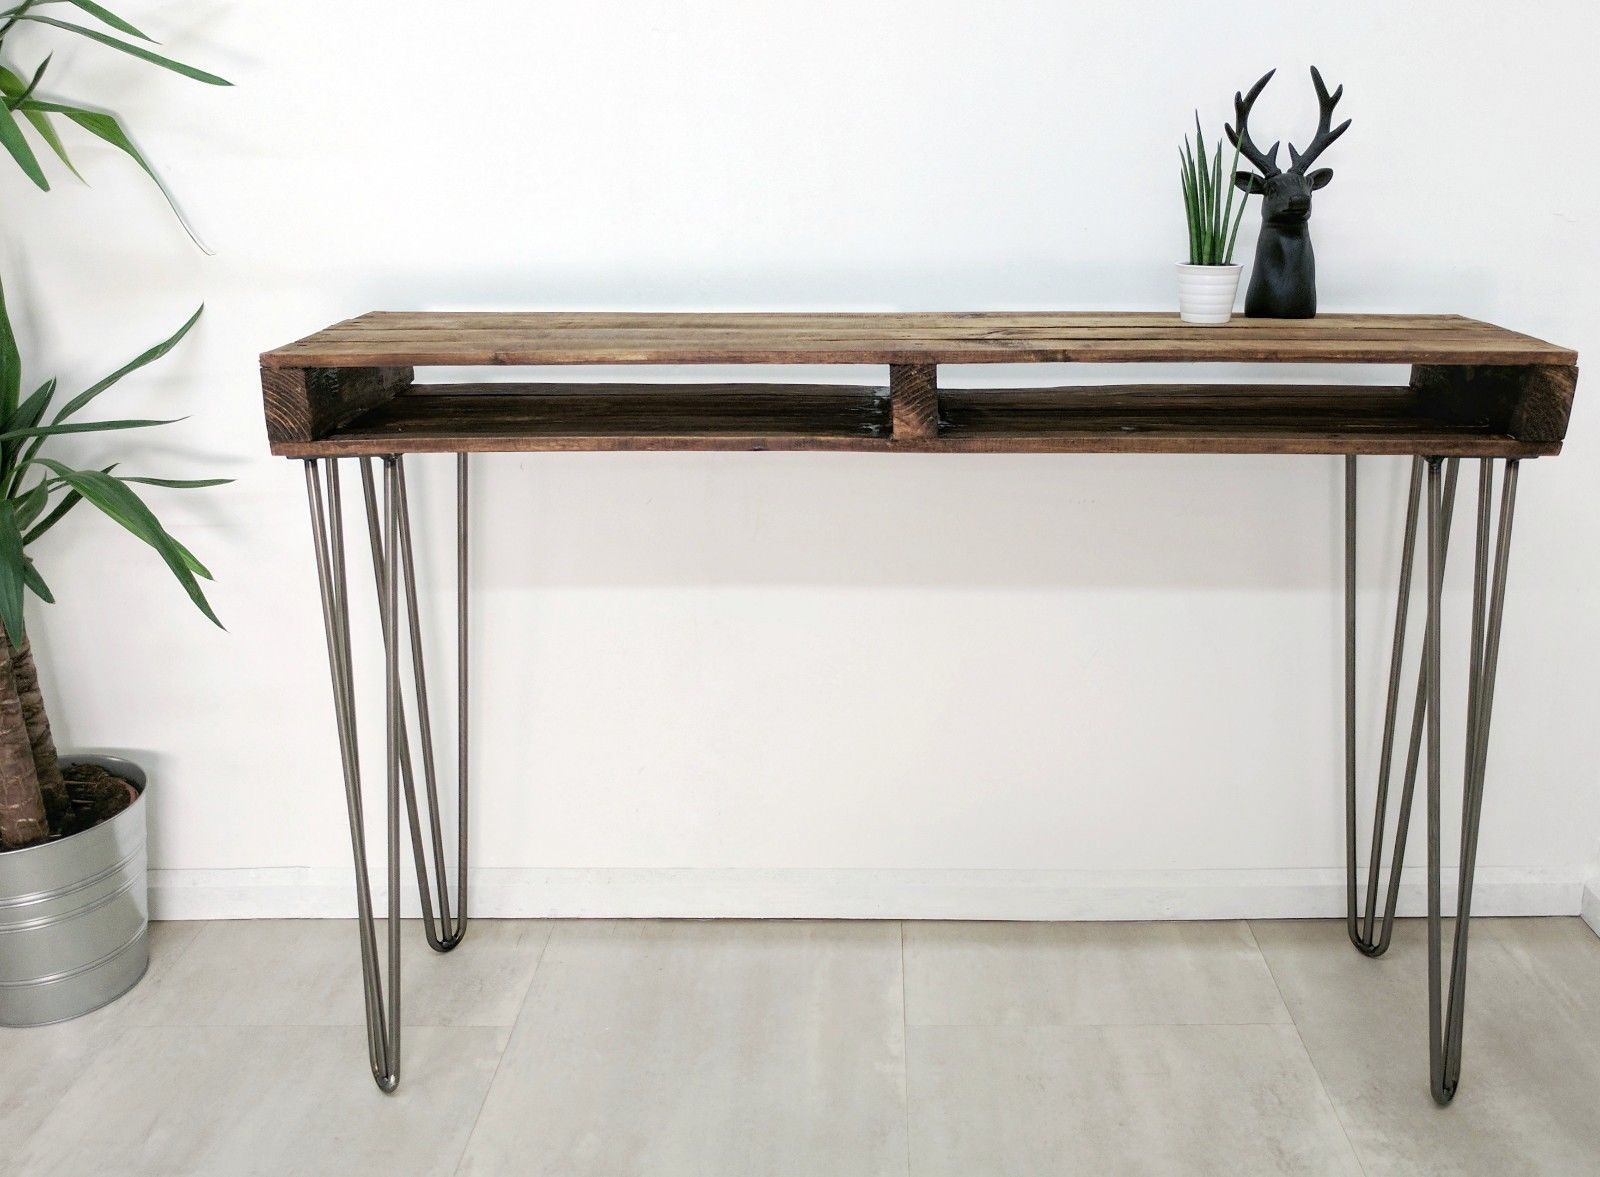 Upcycled Reclaimed Pallet Wood Sideboard/ Hallway Table ...